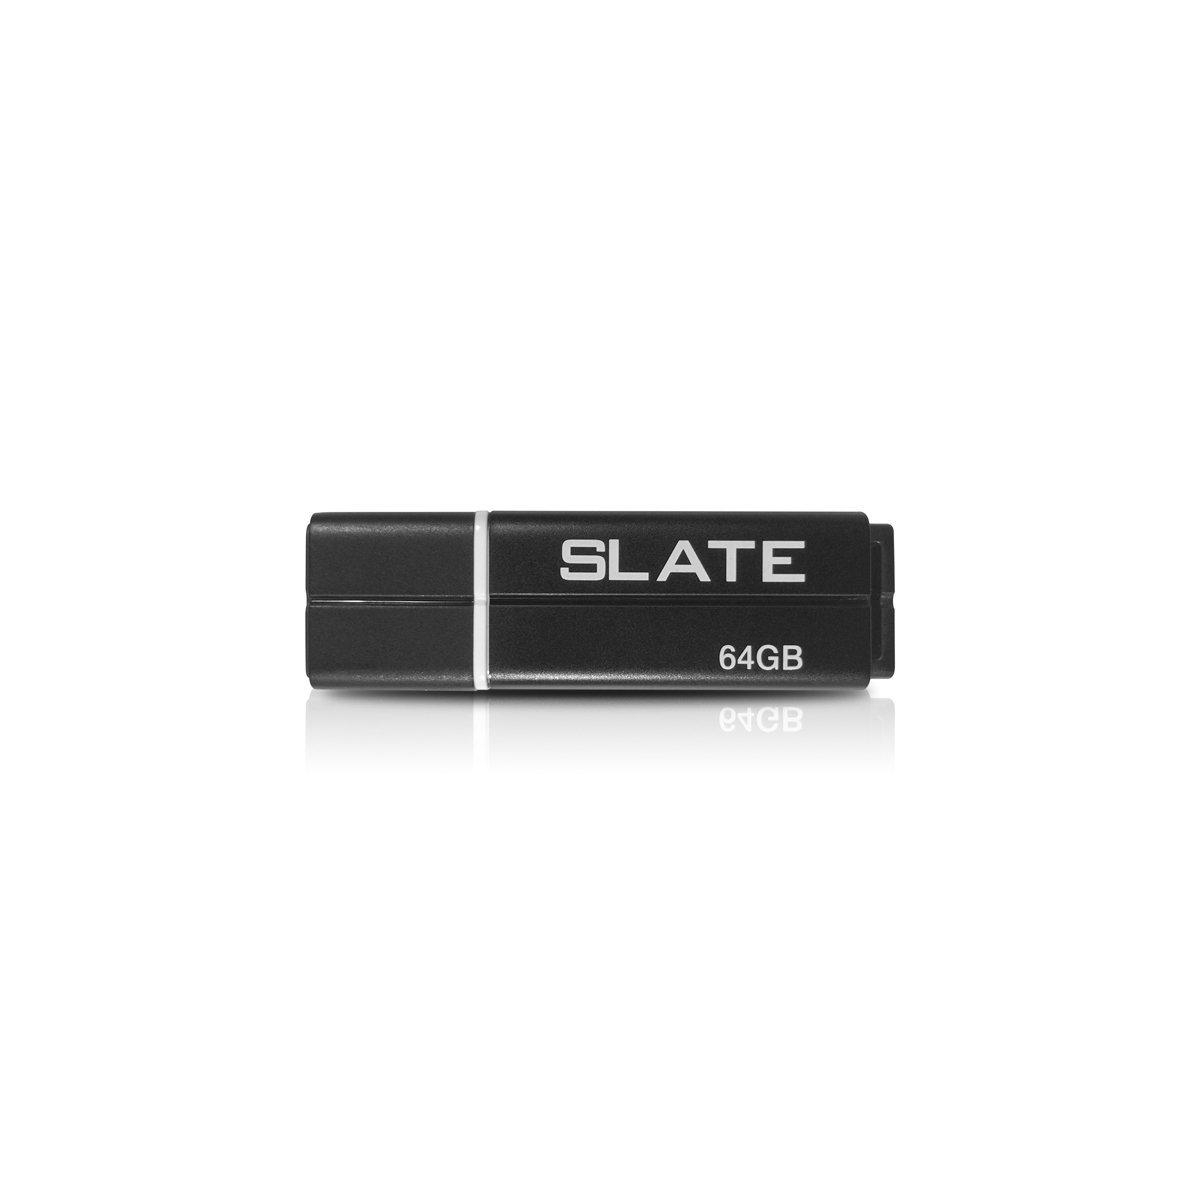 64GB Patriot Slate USB 3.0 černý PSF64GLSS3USB